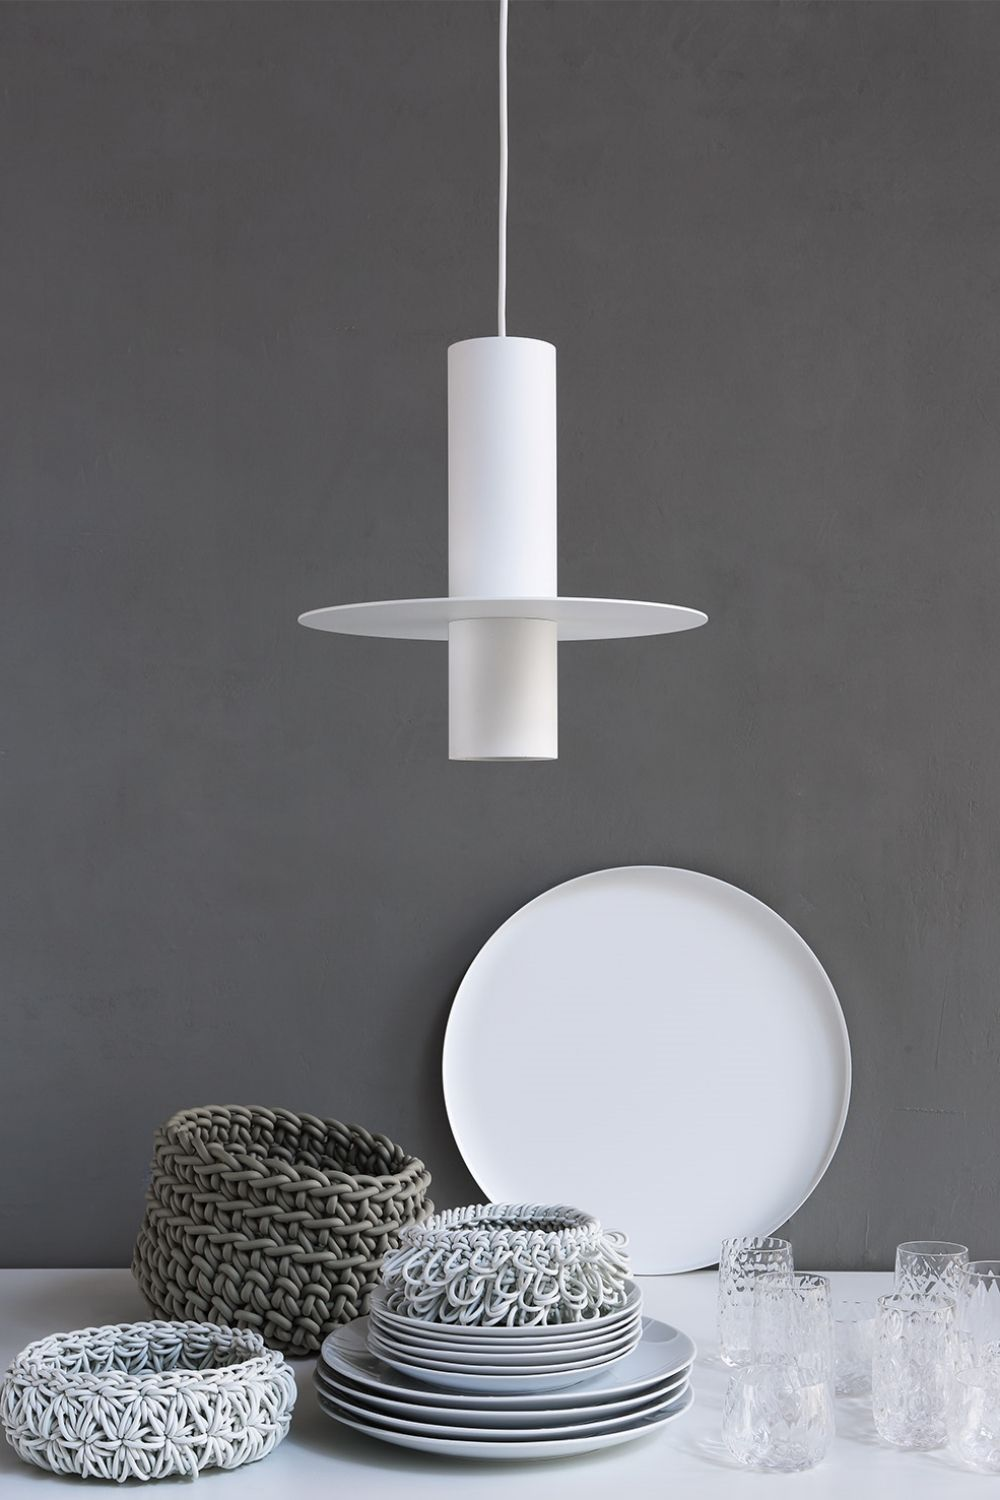 Covo suspension lamp made of metal, white colour